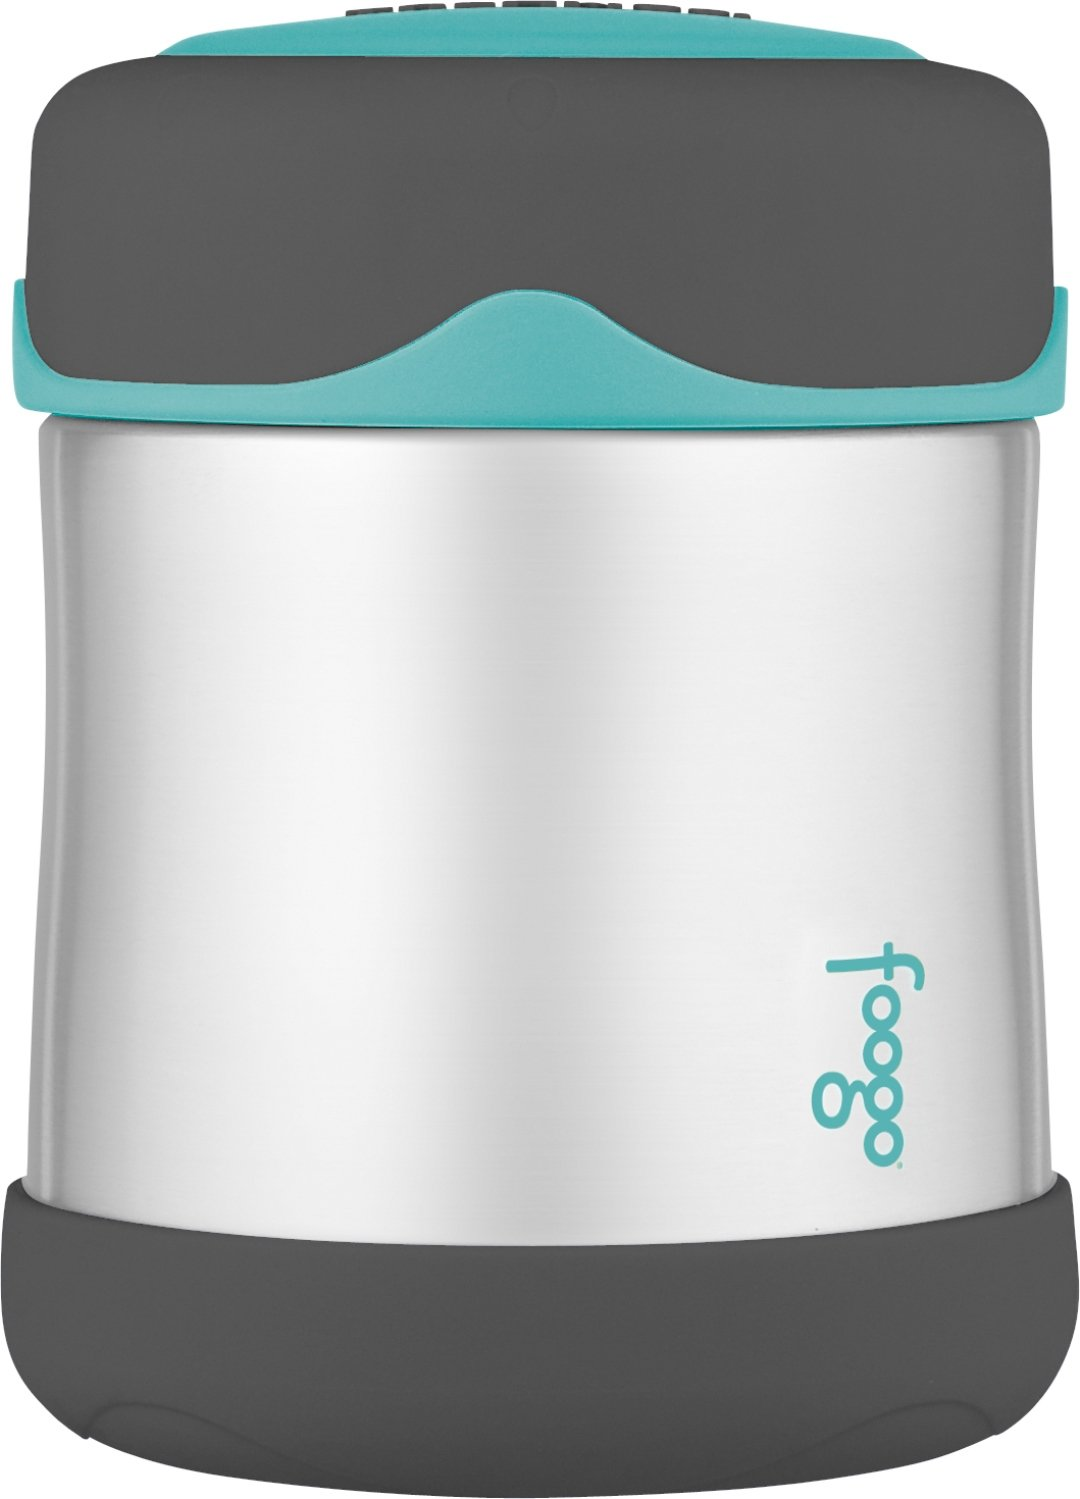 THERMOS FOOGO Vacuum Insulated Stainless Steel 10-Ounce Food Jar Charcoal//Teal